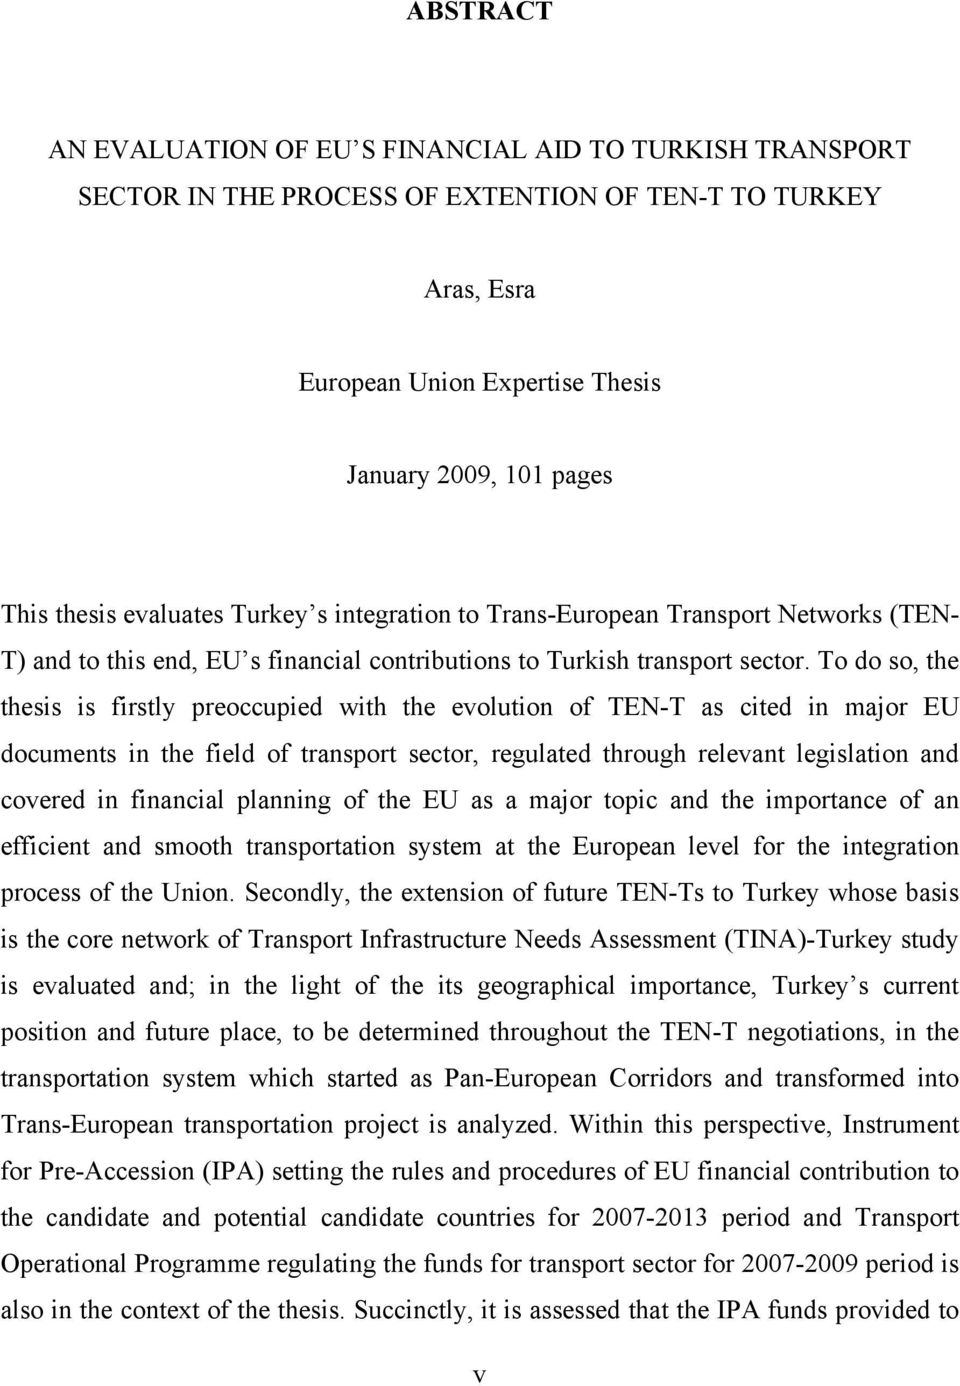 To do so, the thesis is firstly preoccupied with the evolution of TEN-T as cited in major EU documents in the field of transport sector, regulated through relevant legislation and covered in